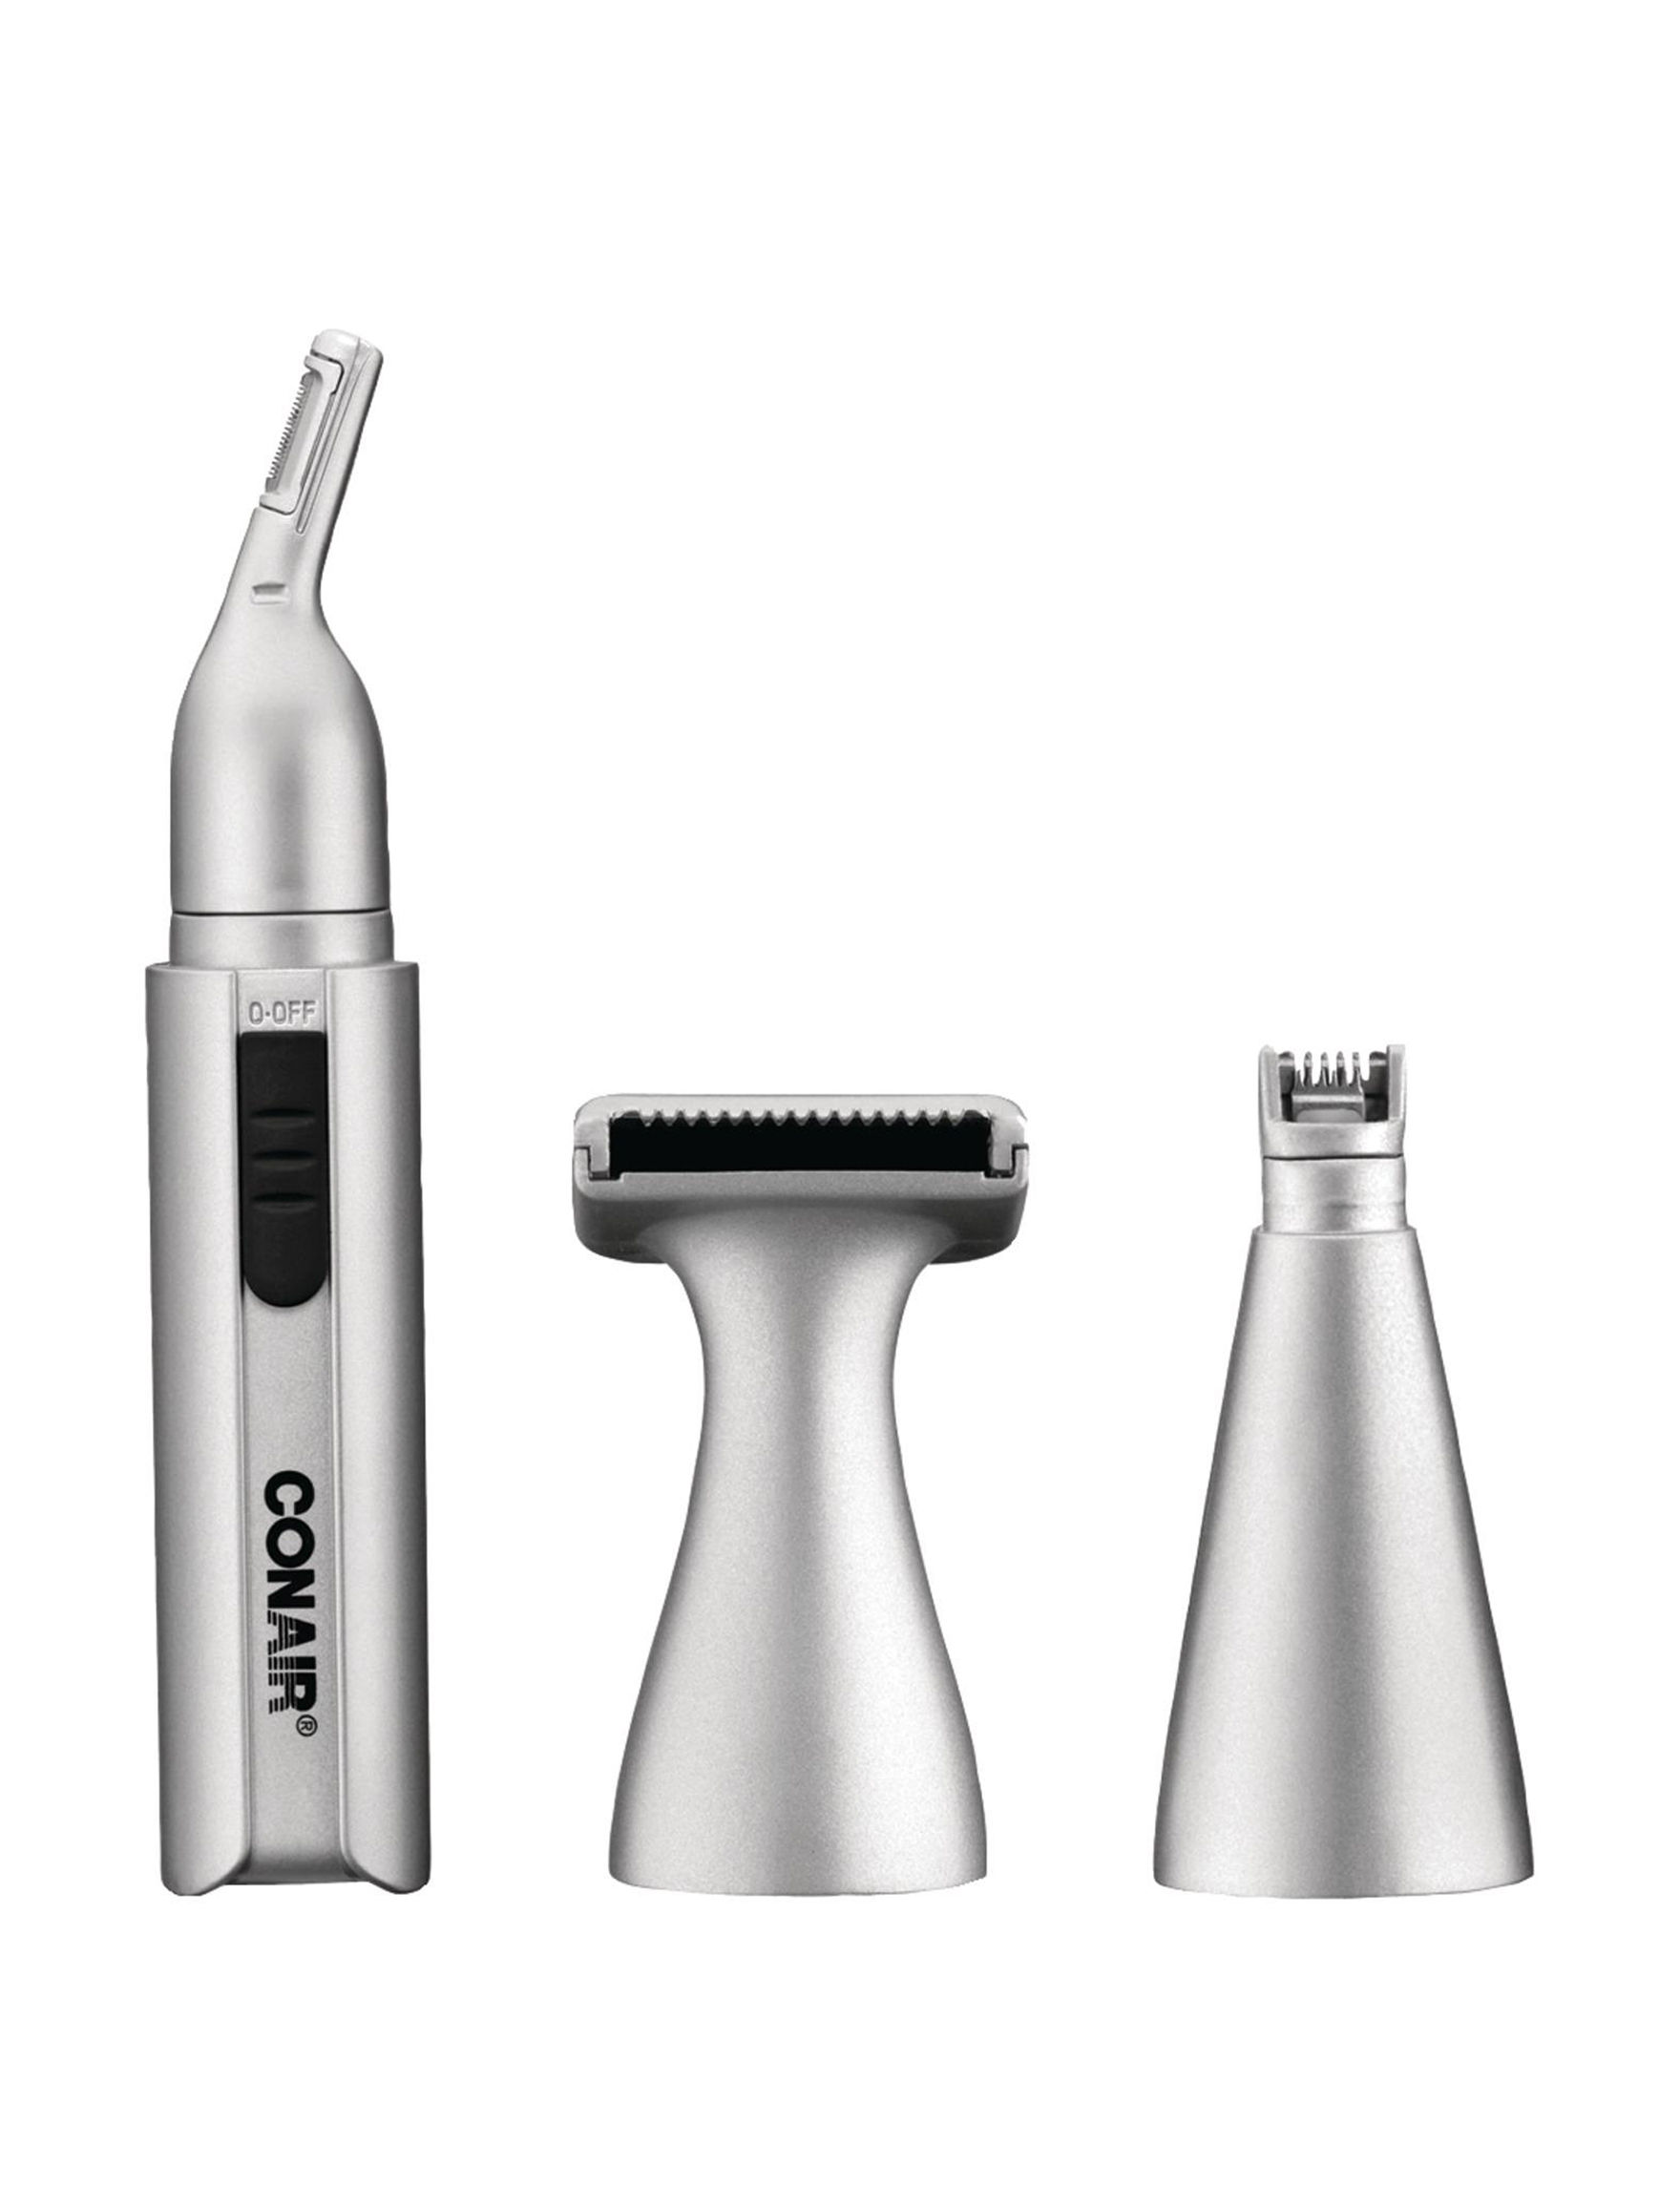 Conair Silver Hairstyling Products Hairstyling Tools Tools & Brushes Bath Accessories